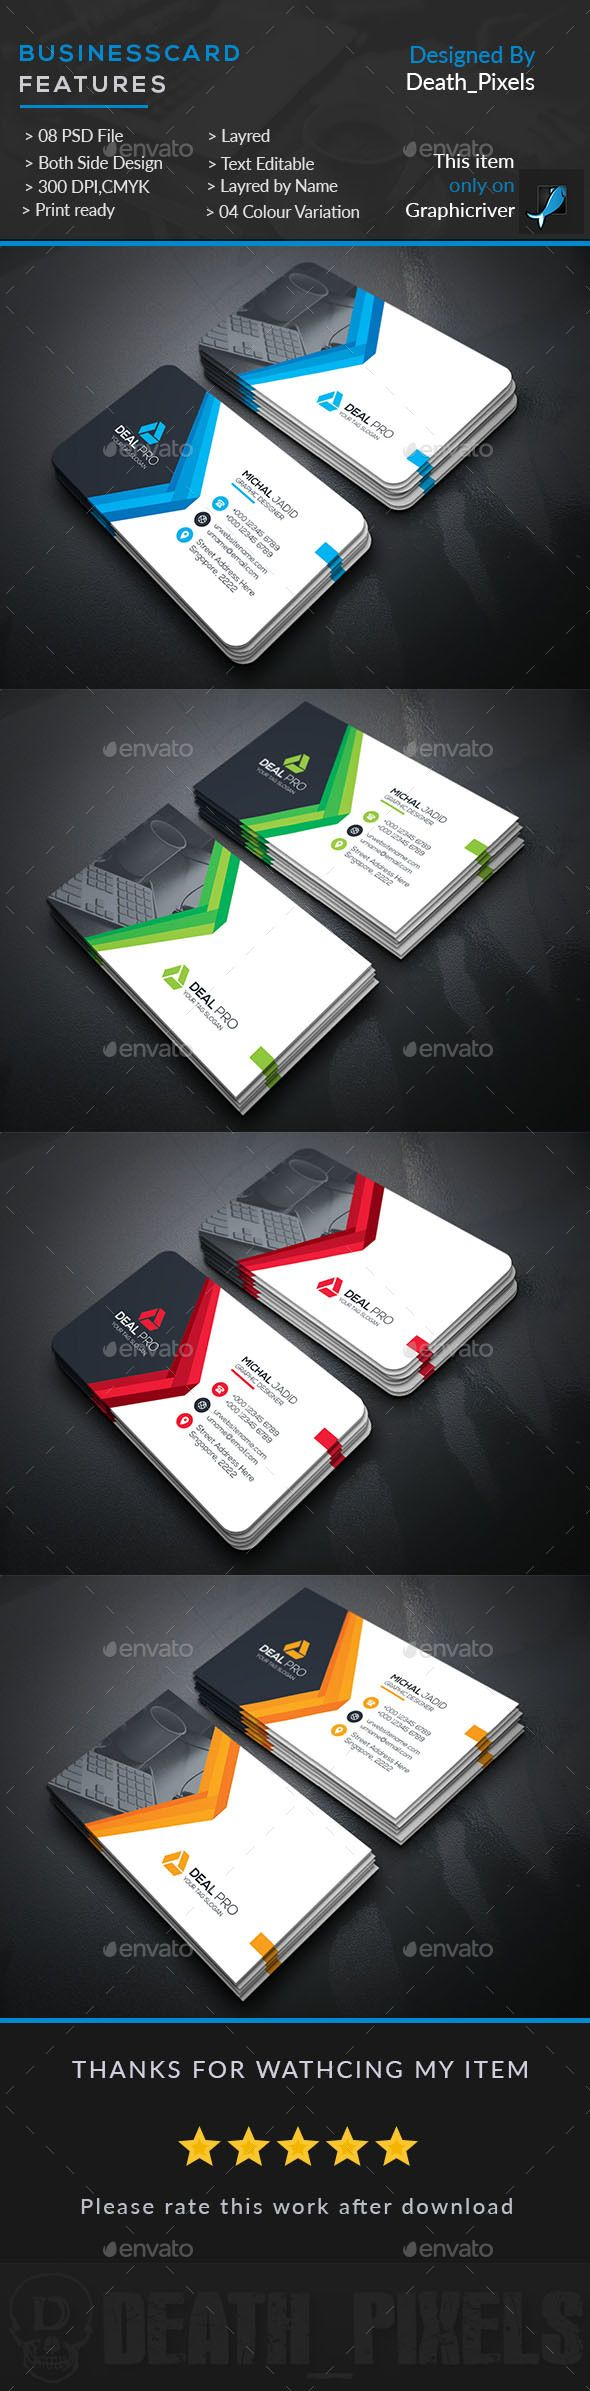 12 best graphic design business cards images on pinterest 12 best graphic design business cards images on pinterest business cards lipsense business cards and business card design reheart Image collections